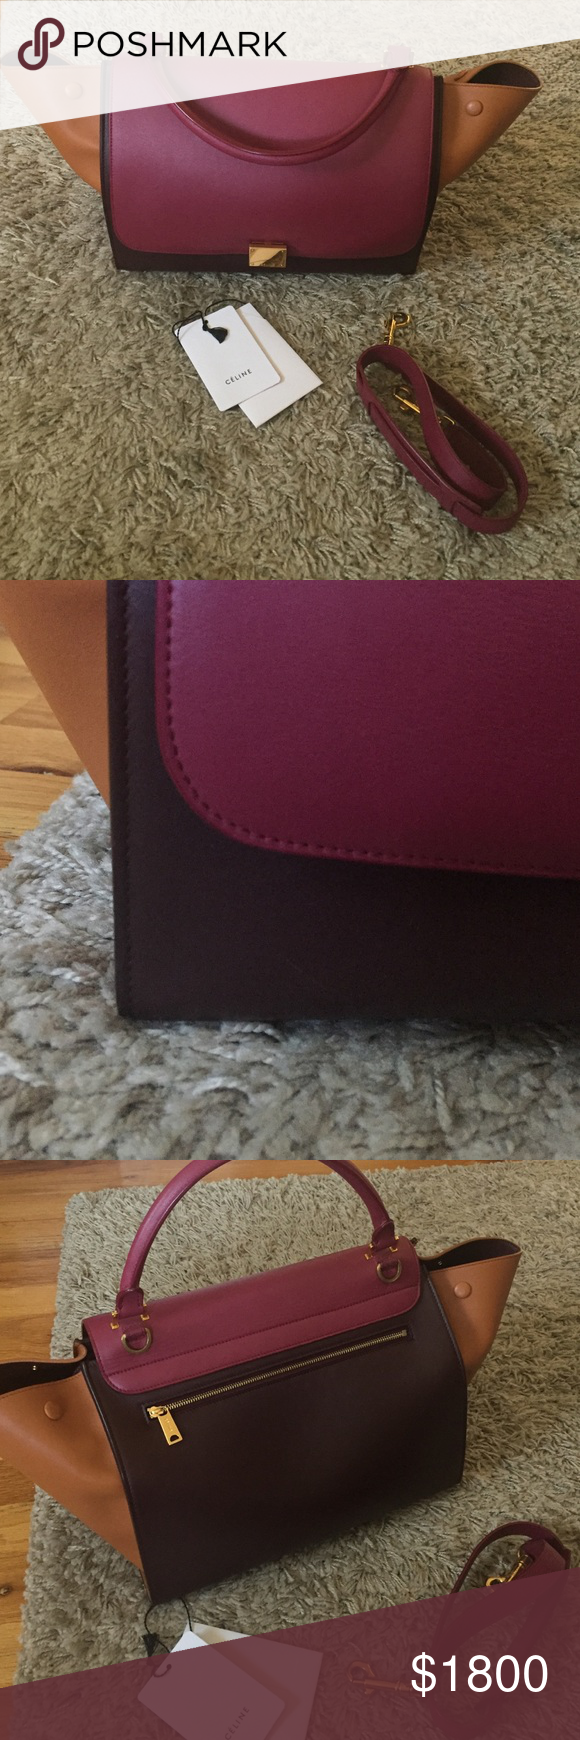 9778fa83ad Celine Tricolor Smooth Calfskin Trapeze Medium Bag Authentic. Minimal use.  Amazing condition with one little blemish (as shown in second photo).